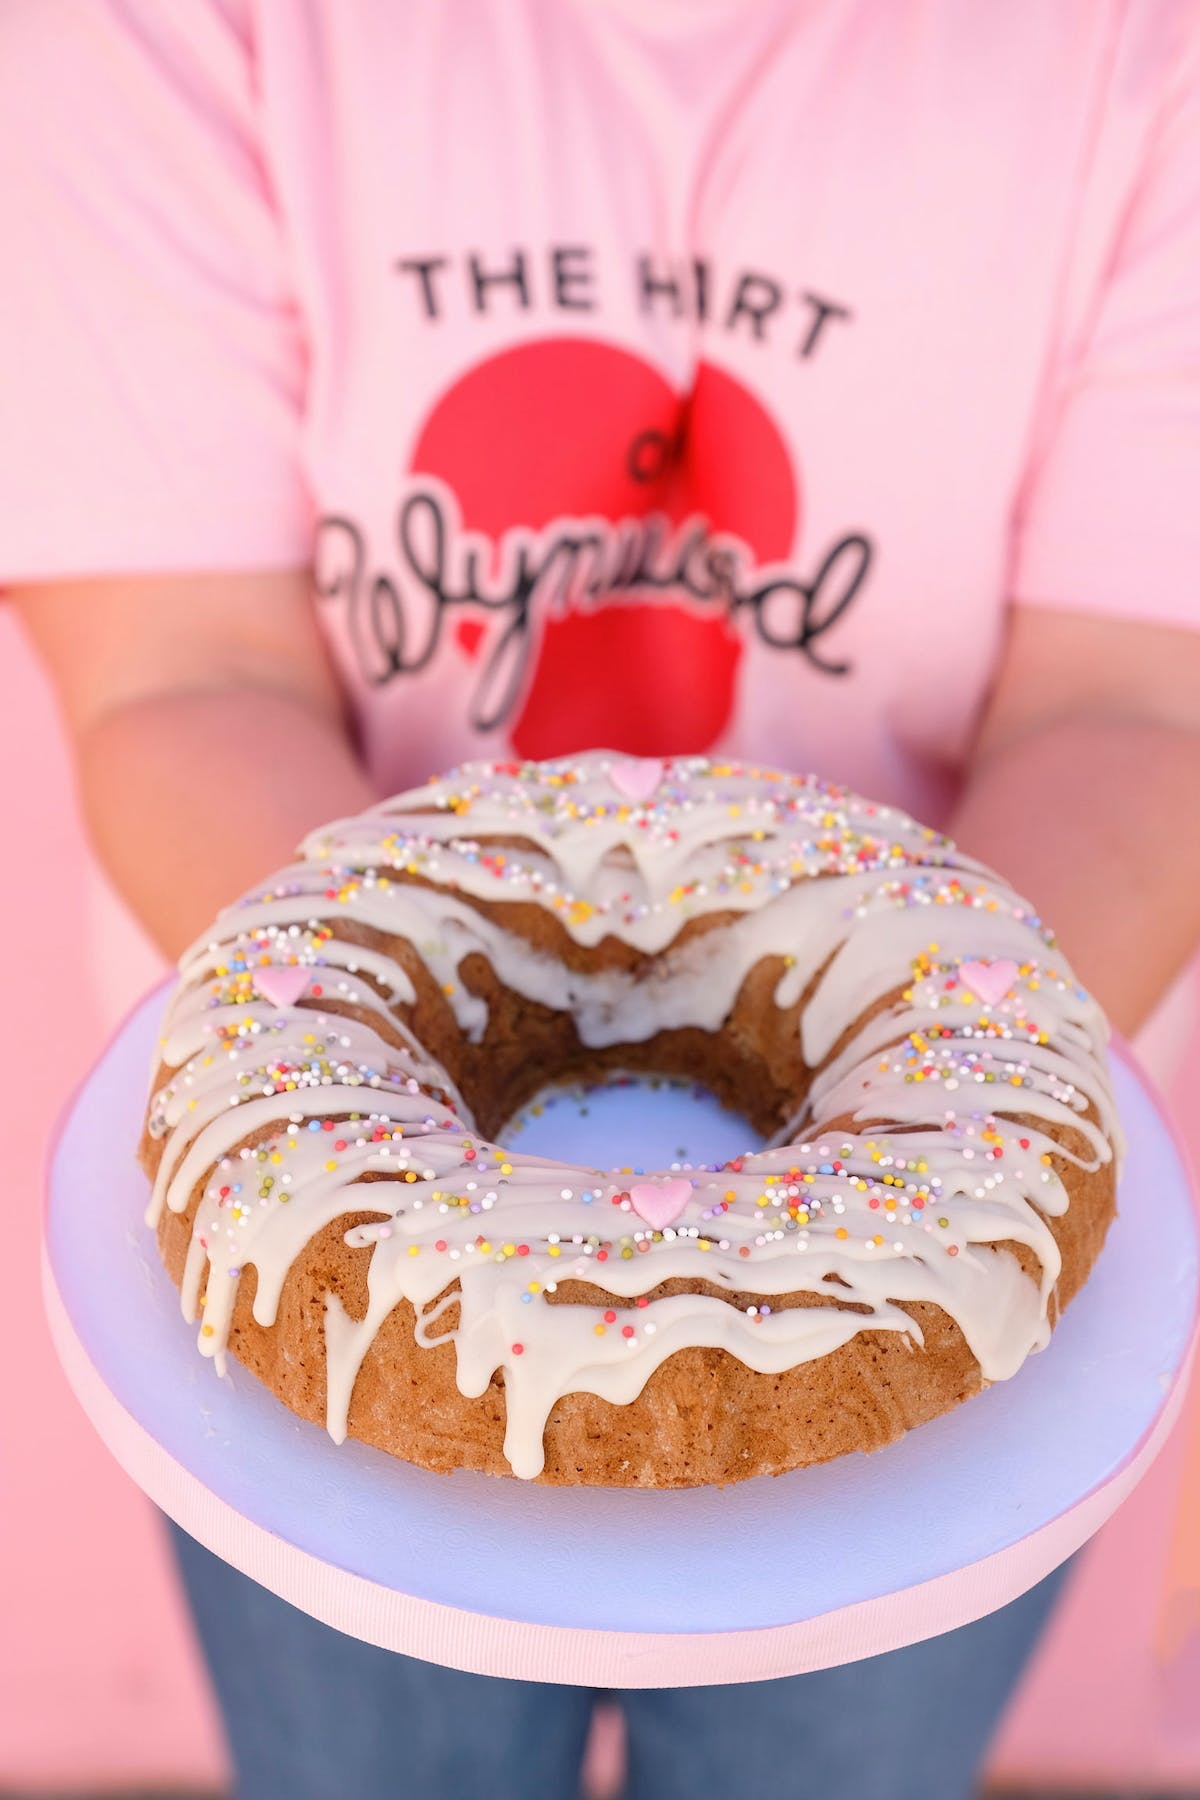 a close up of a person holding a donut in front of a cake